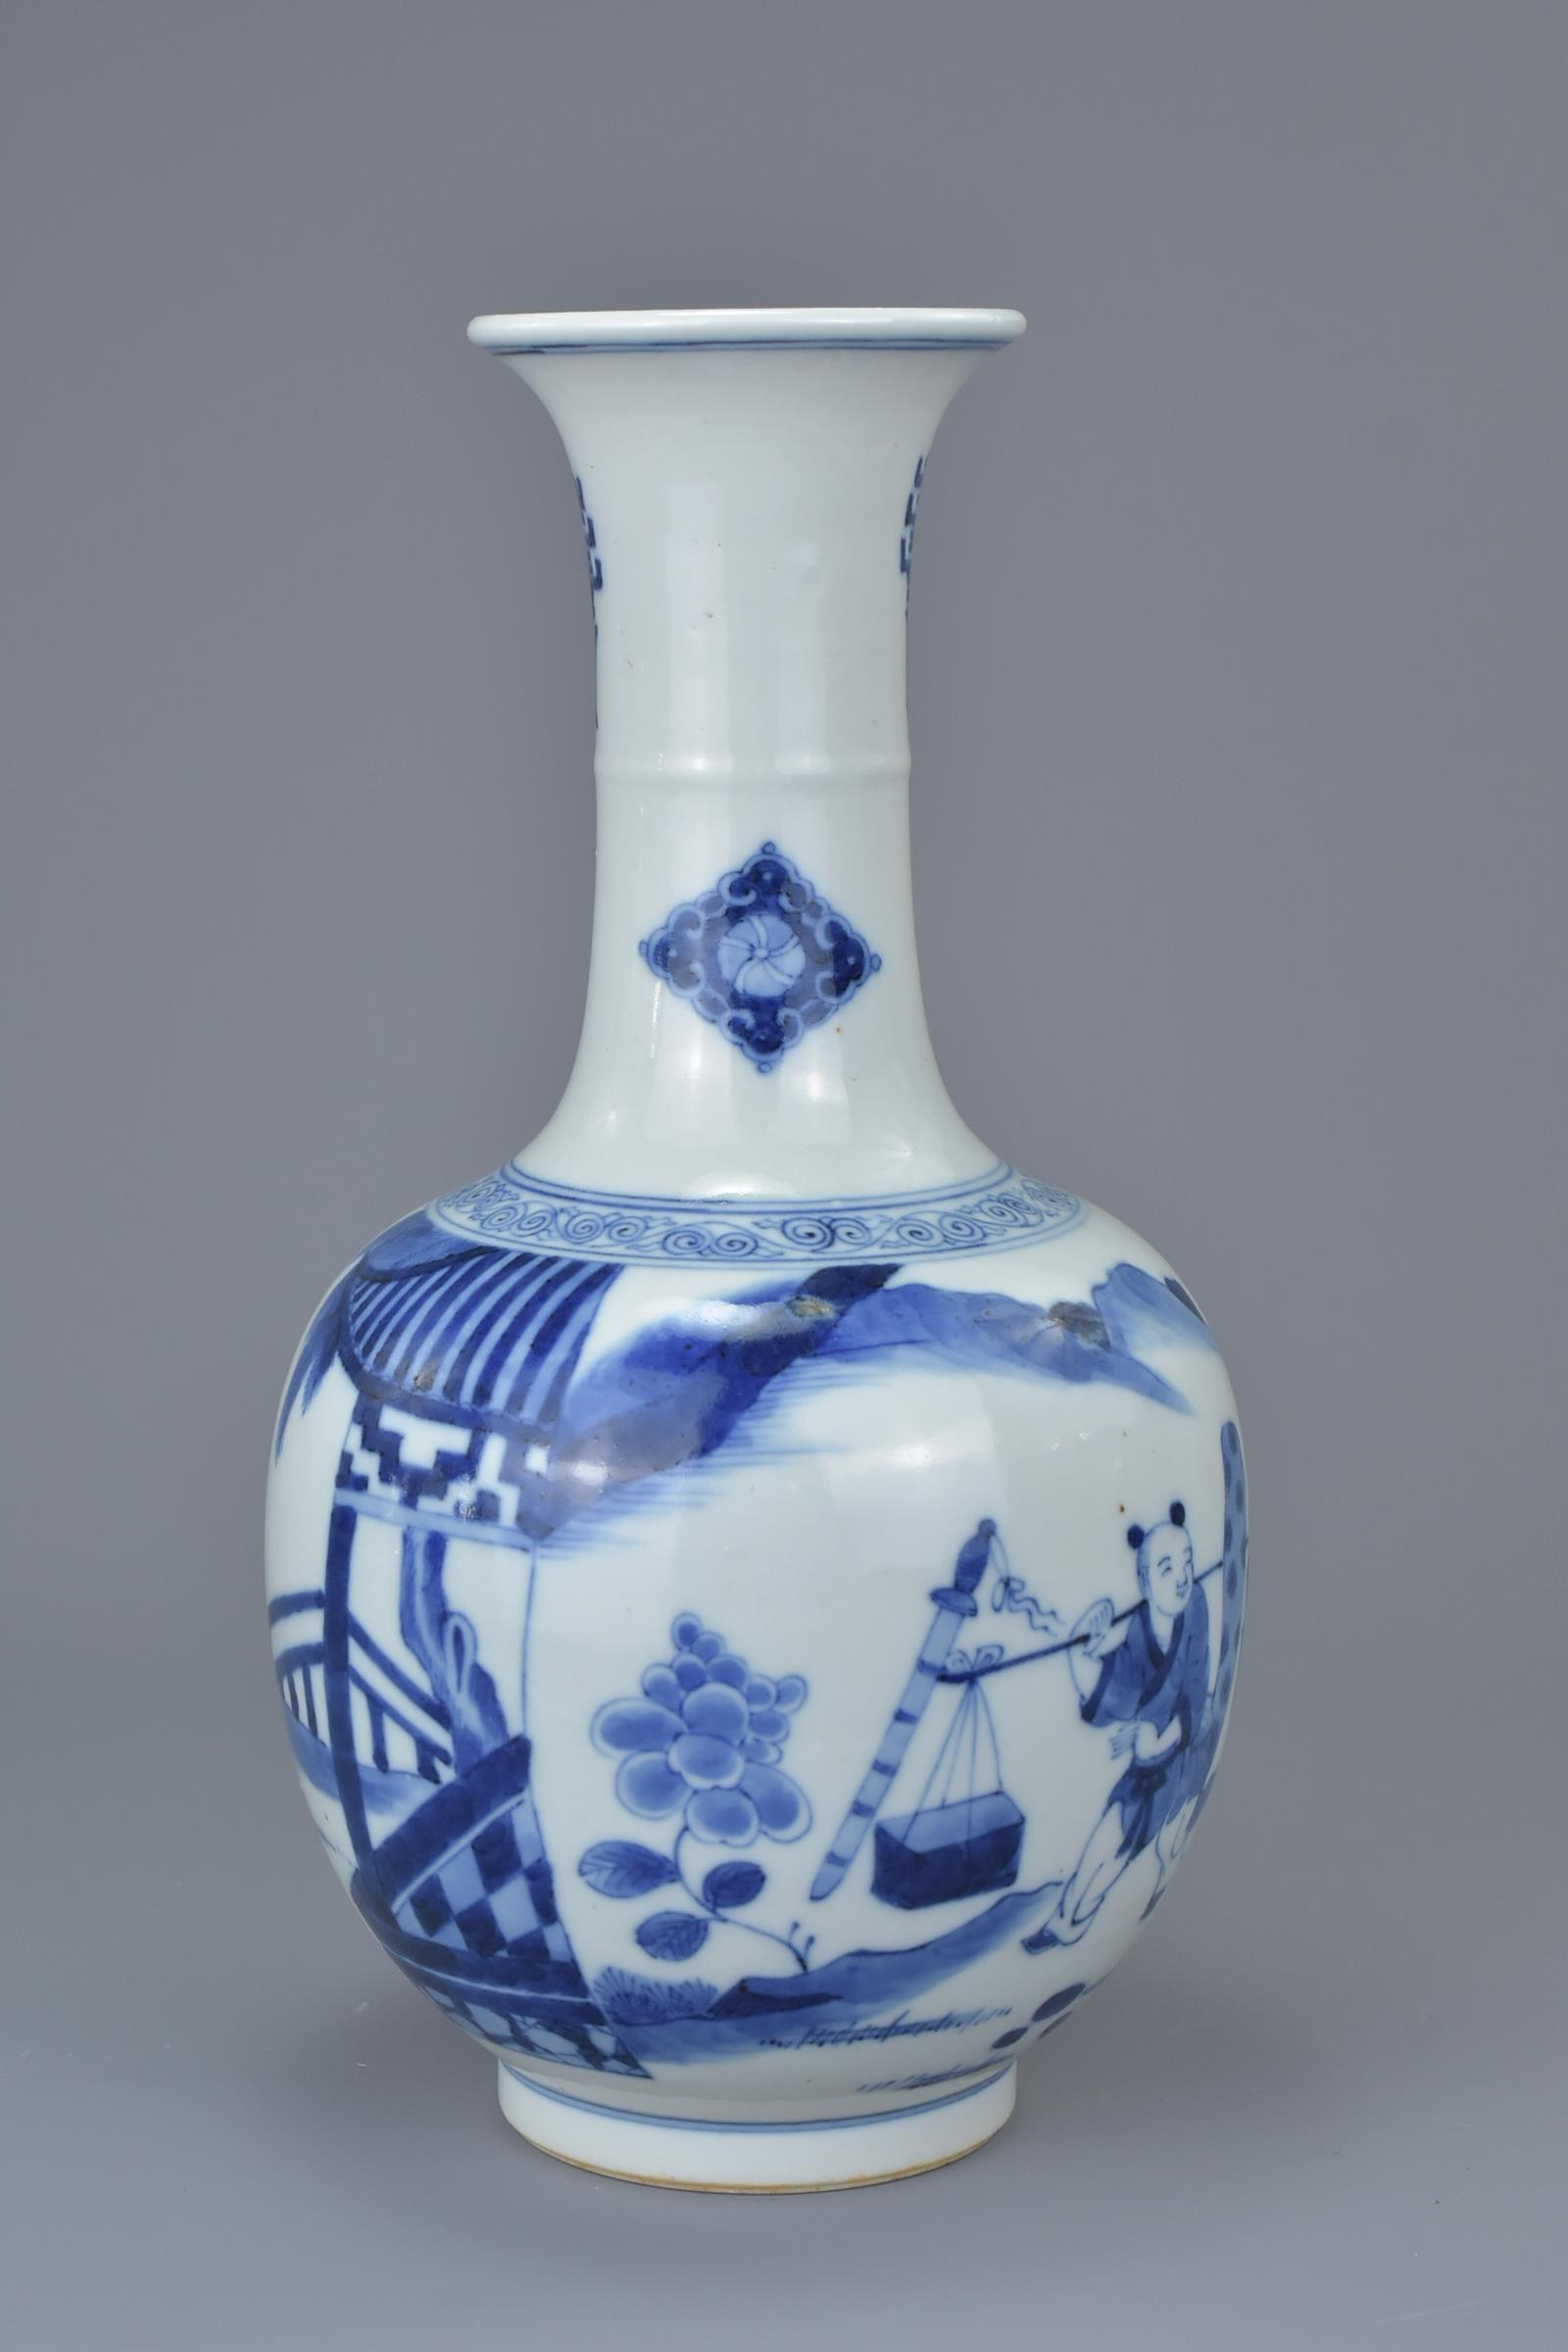 Lot 24 - A Chinese 18/19th C. blue and white porcelain vase